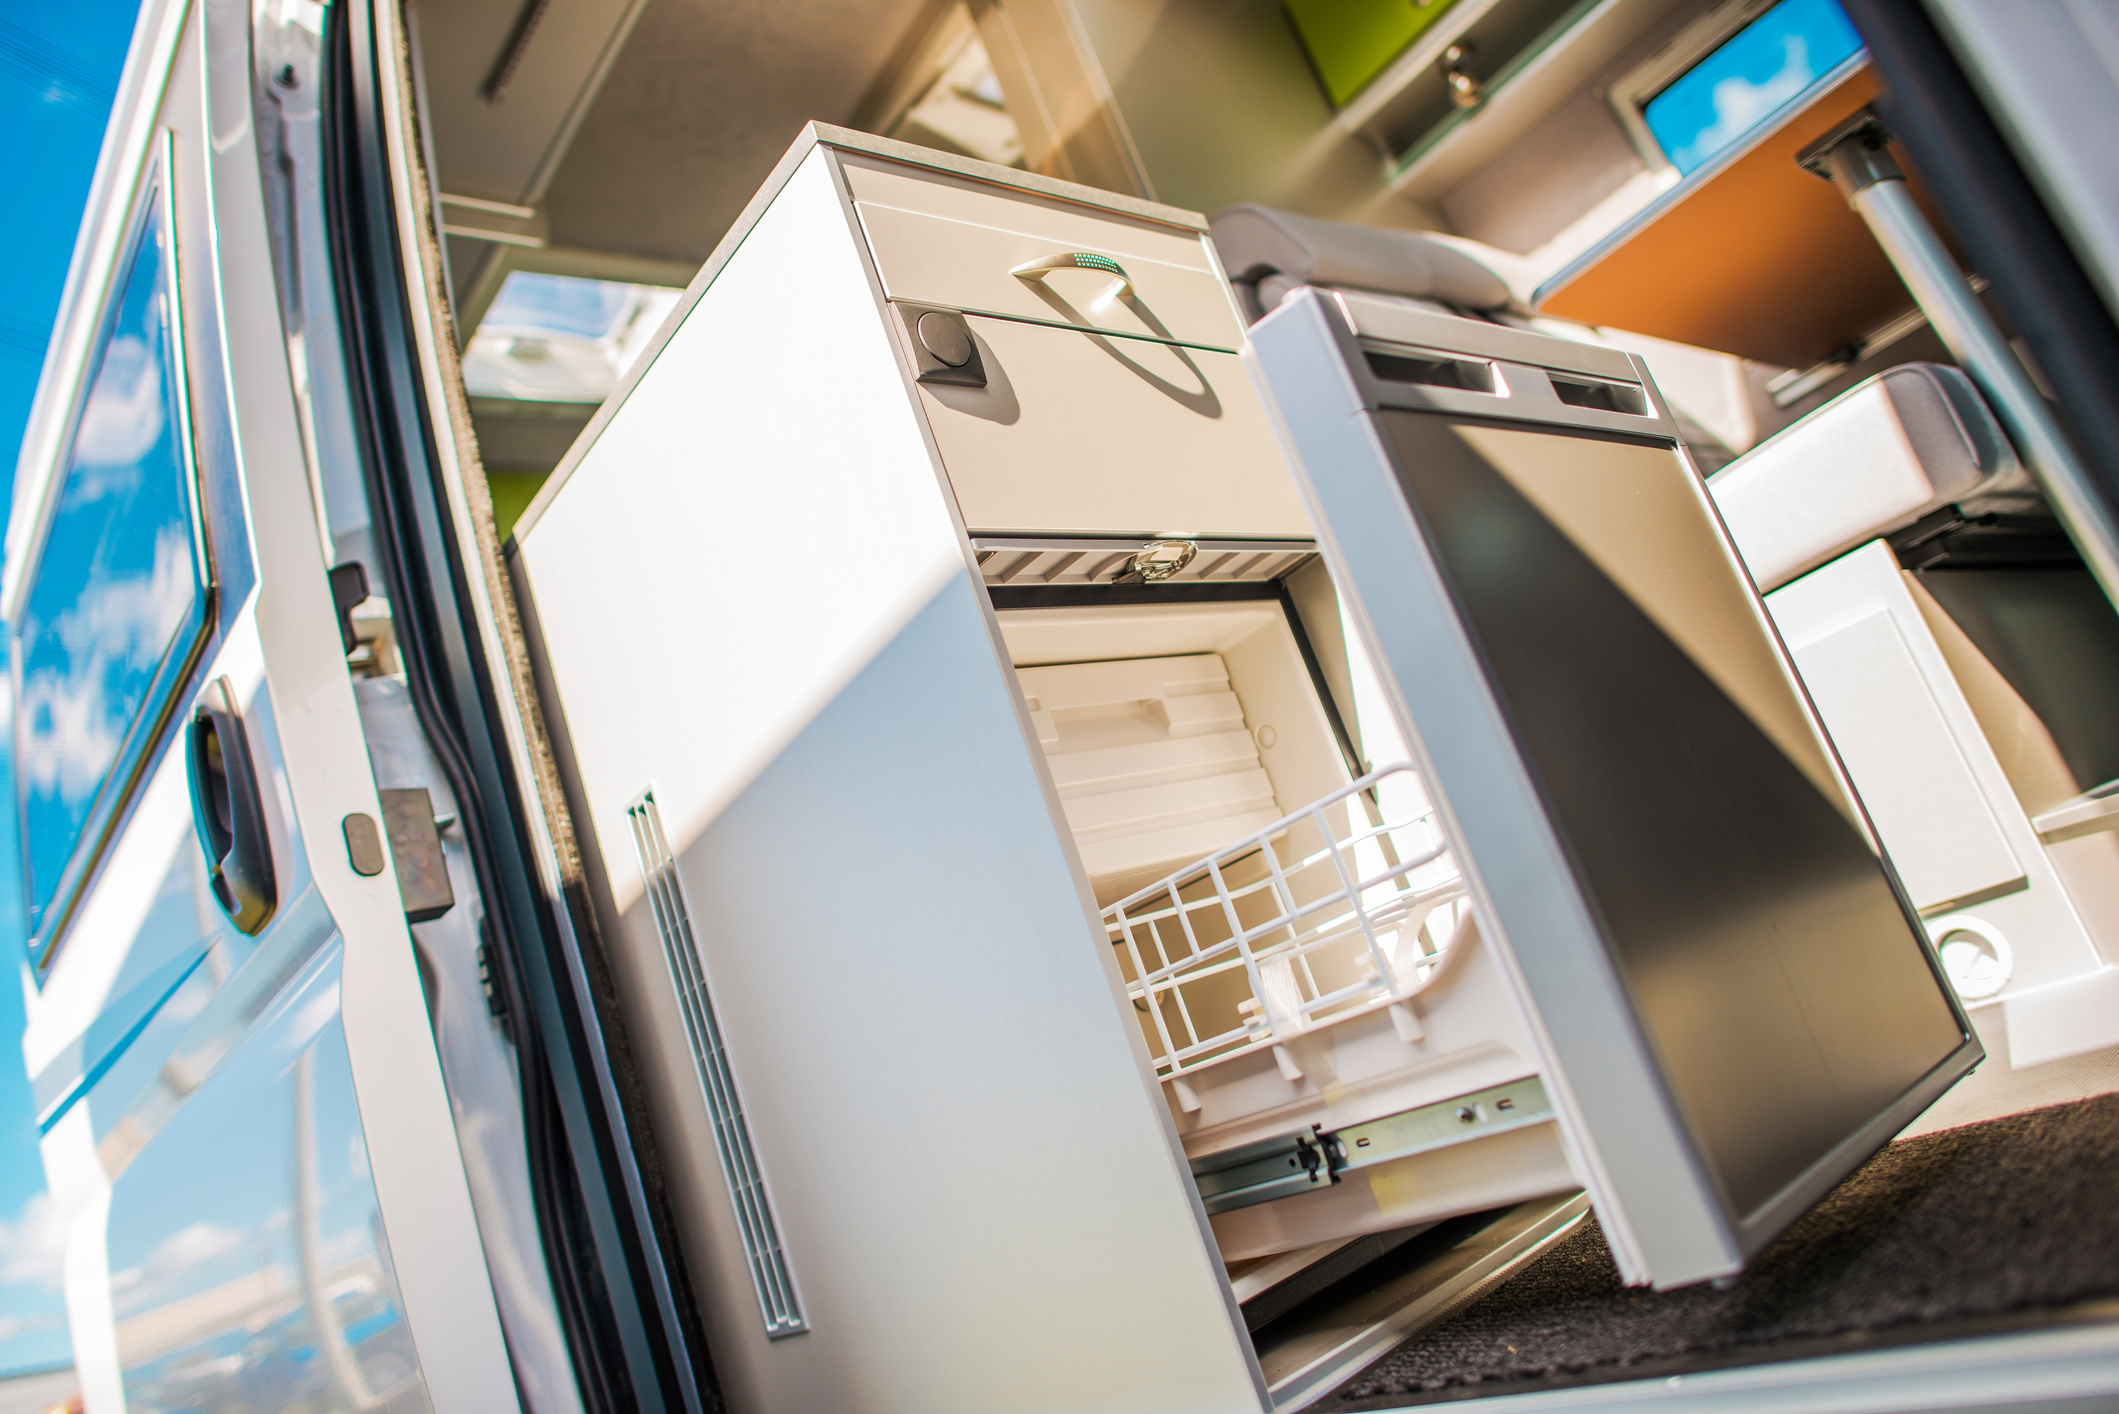 Keep Your RV Fridge Cool With Some Handy Tricks